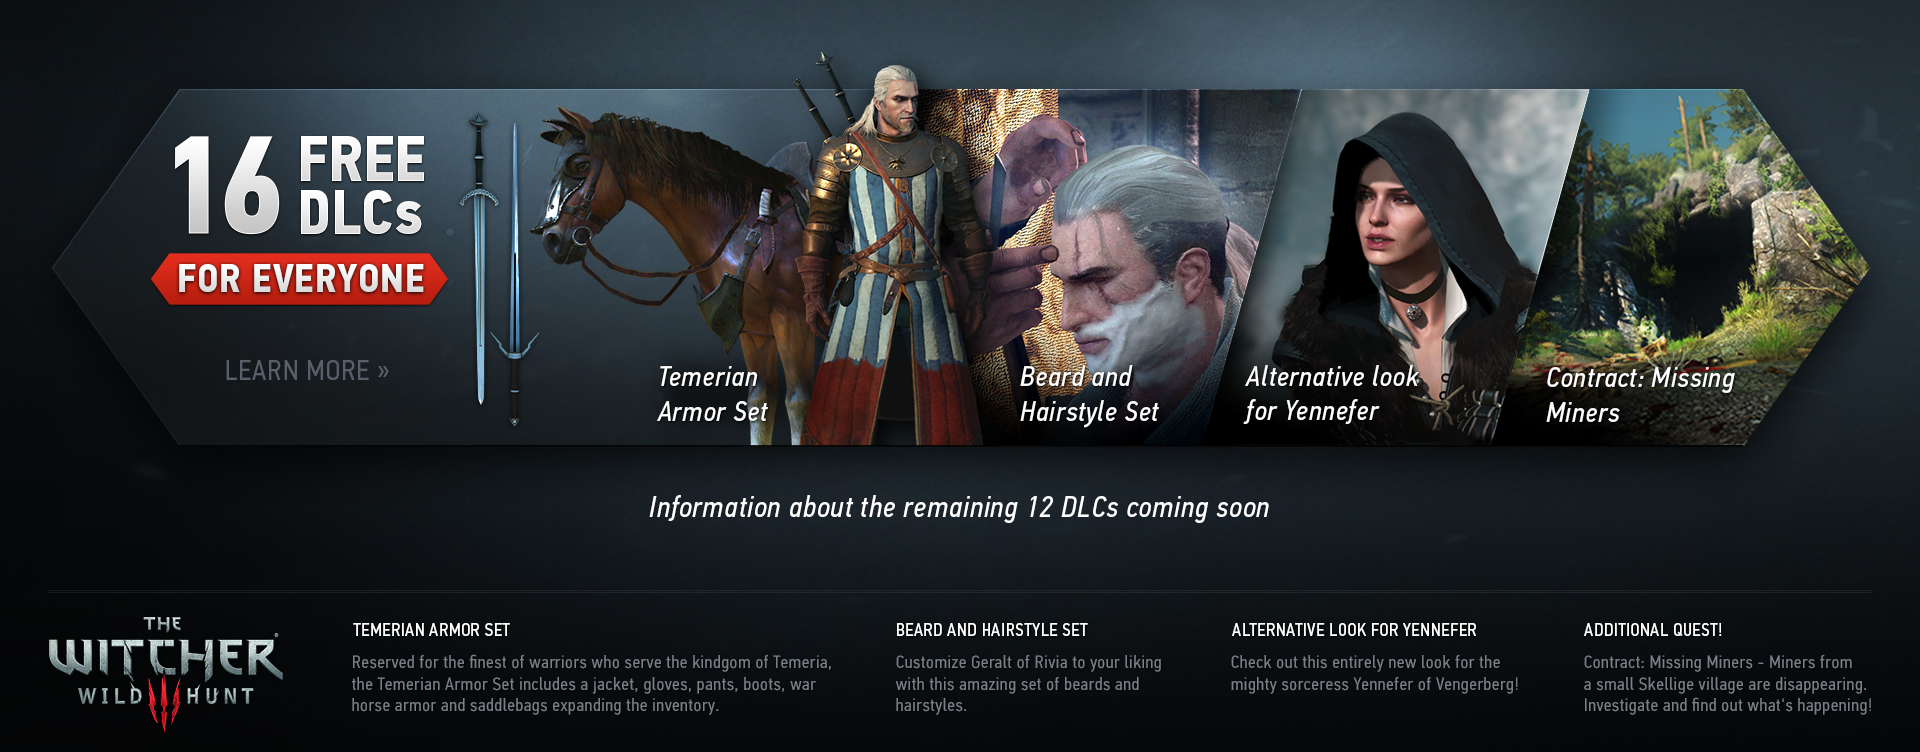 The Witcher 3 Dlc